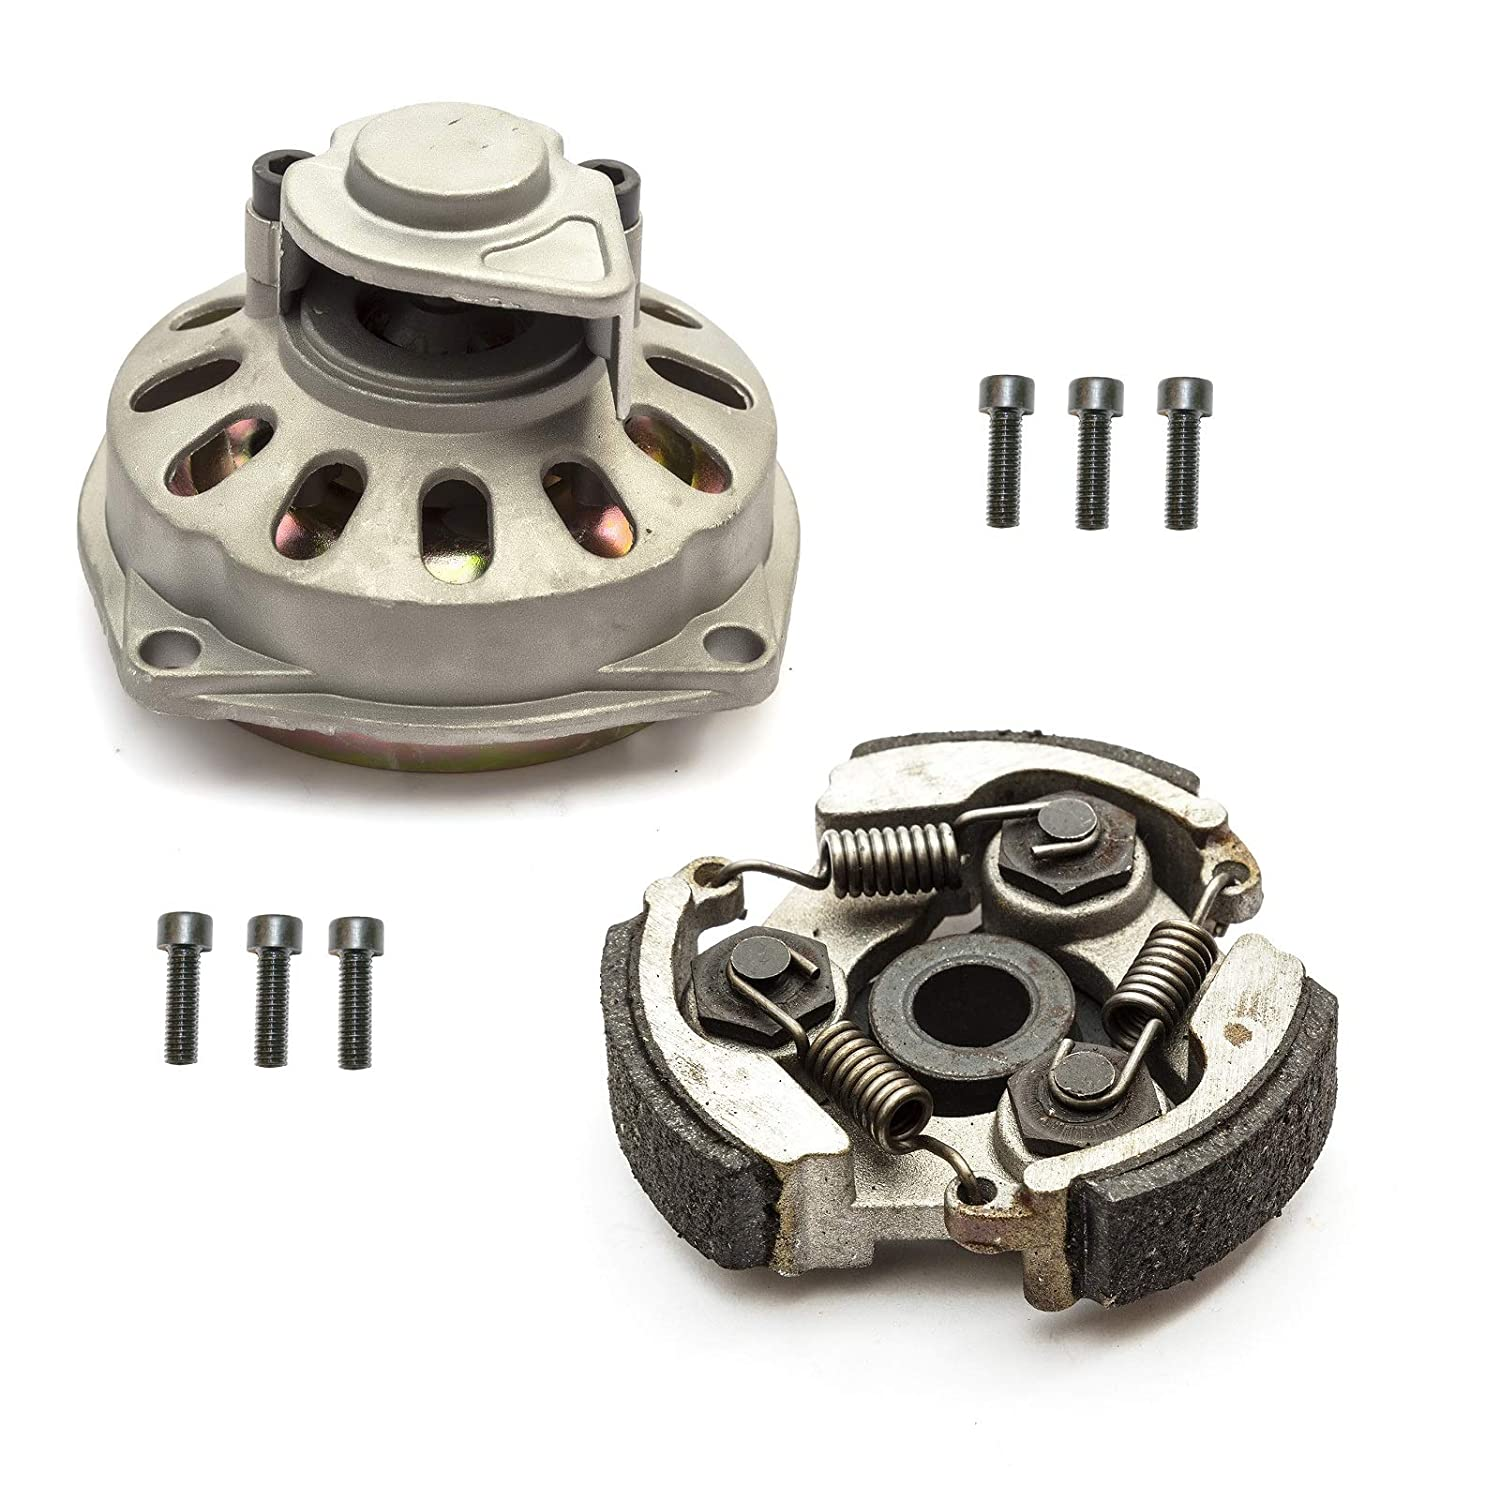 Clutchbell & Clutch Kit 7 Tooth 6mm 47cc 49cc Air Cooled Mini Moto Petrolscooter